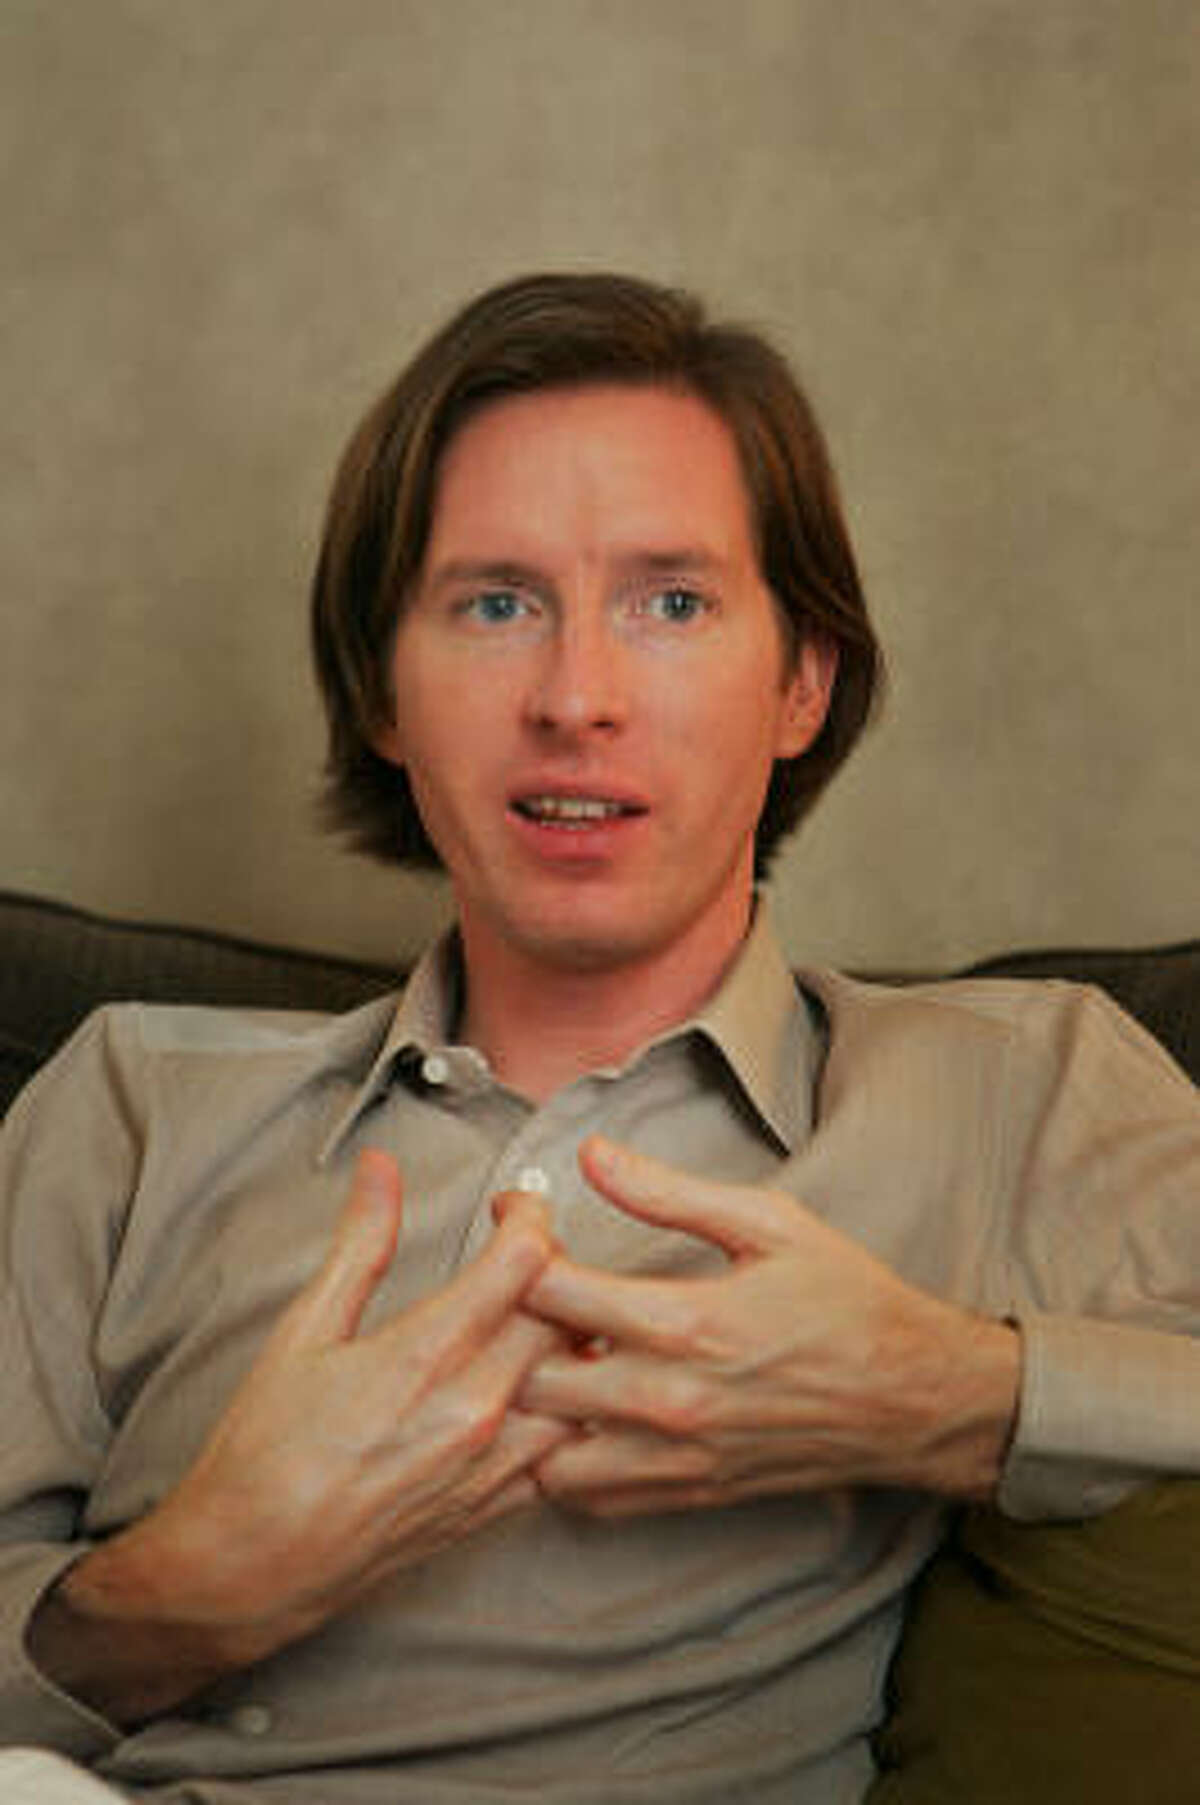 Wes Anderson is the director of The Darjeeling Limited.